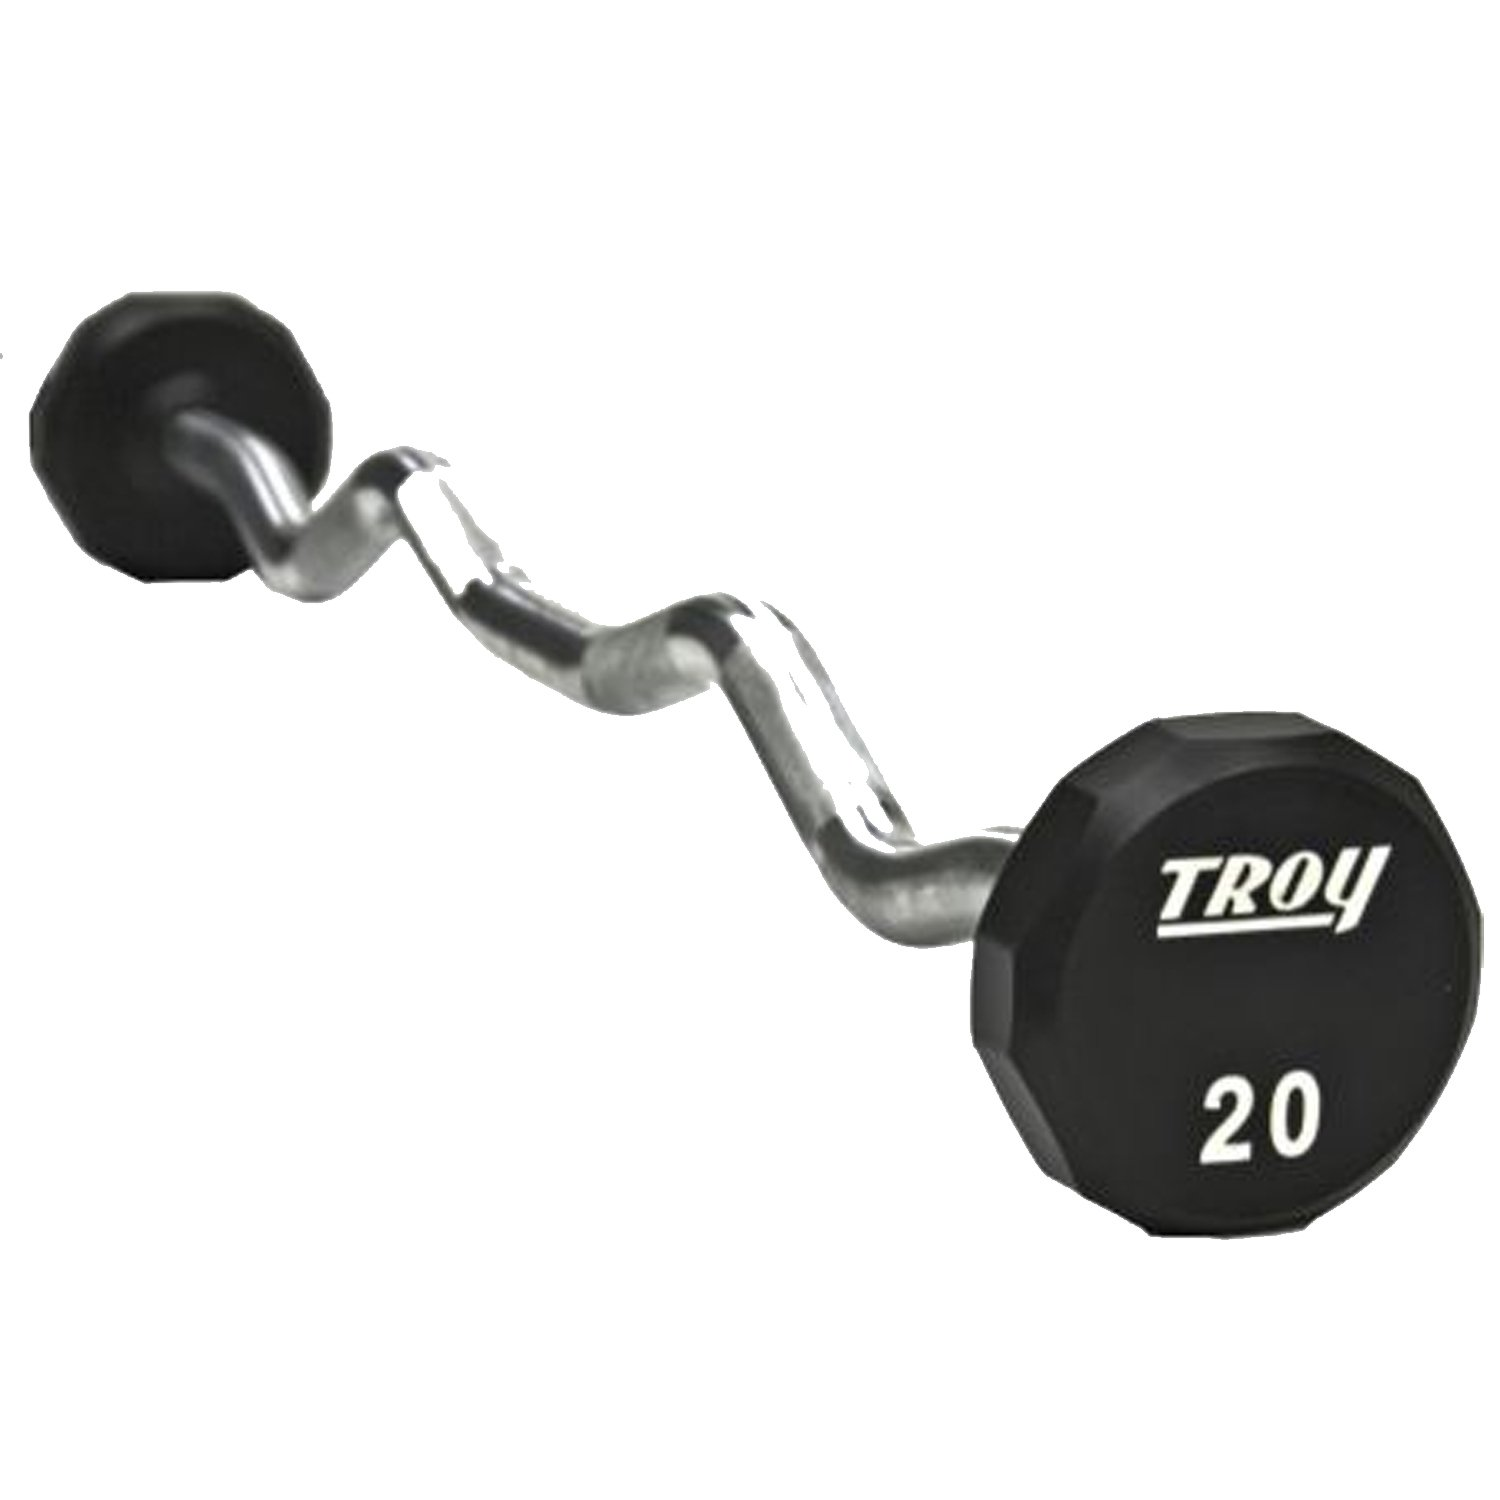 Troy Urethane 12 Sided EZ Curl Barbell